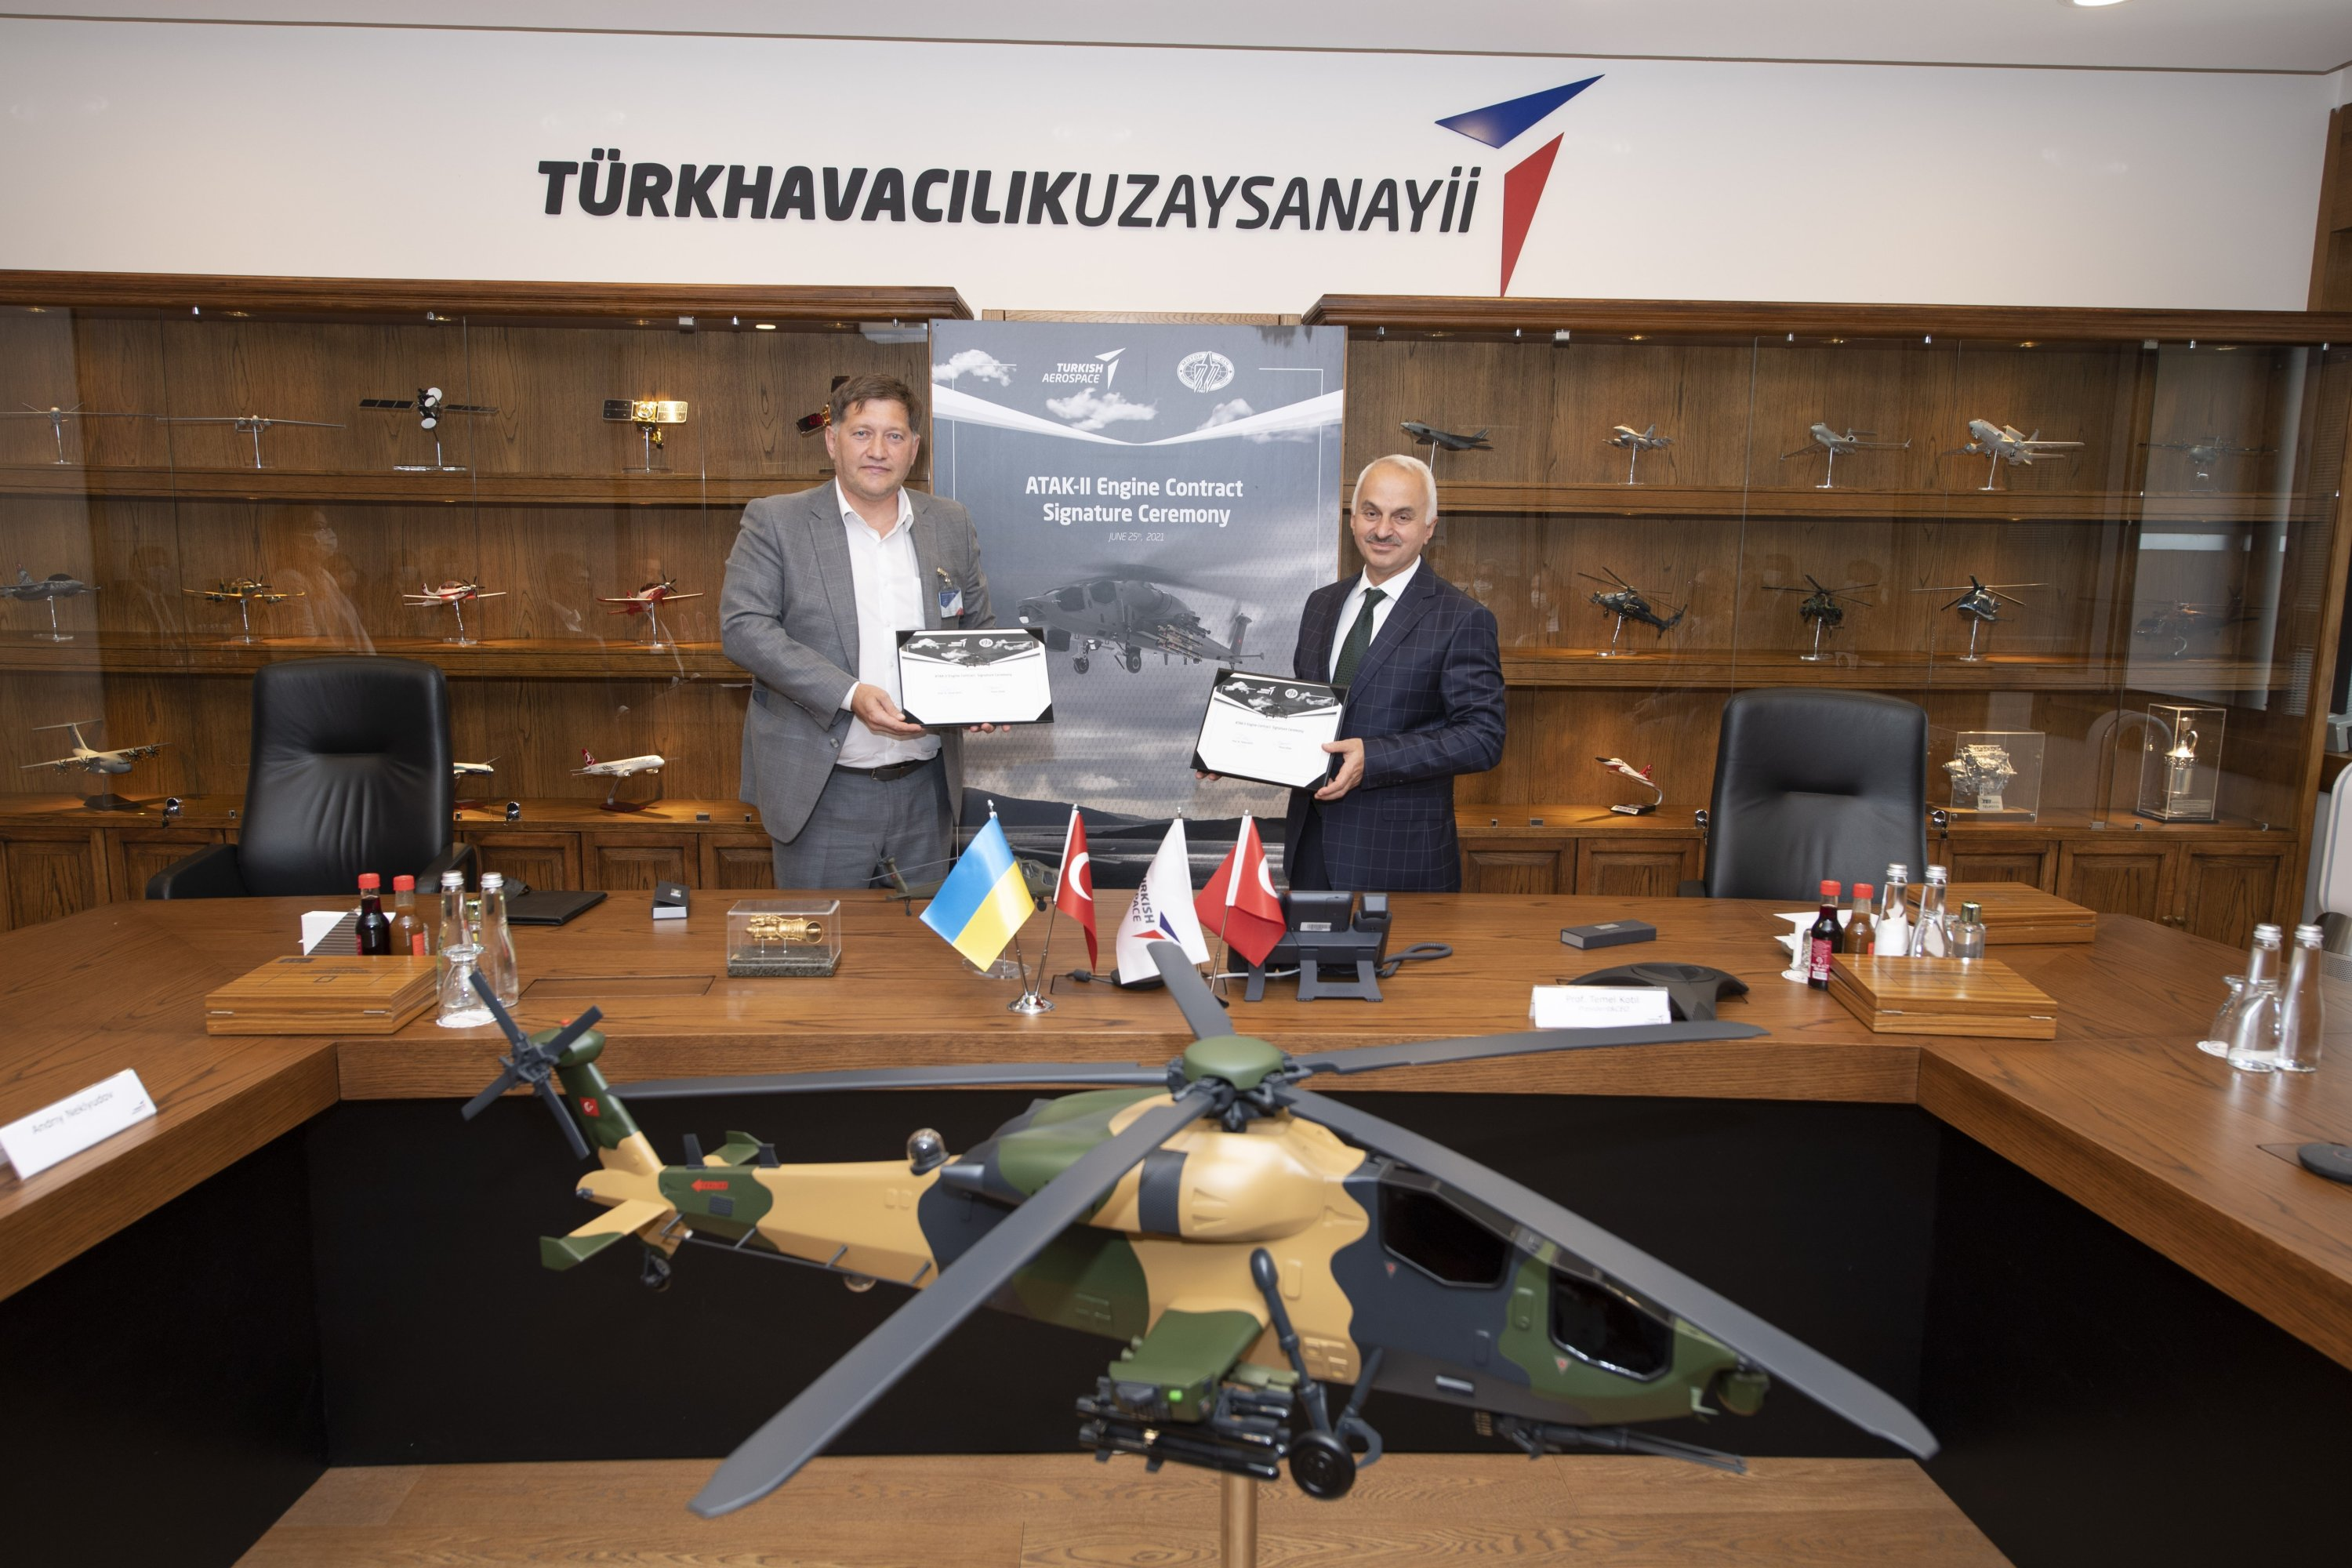 Officials from TAI, Motor Sich seen during the signing of the engine procurement deal, Ankara, Turkey, June 29, 2021. (IHA Photo)